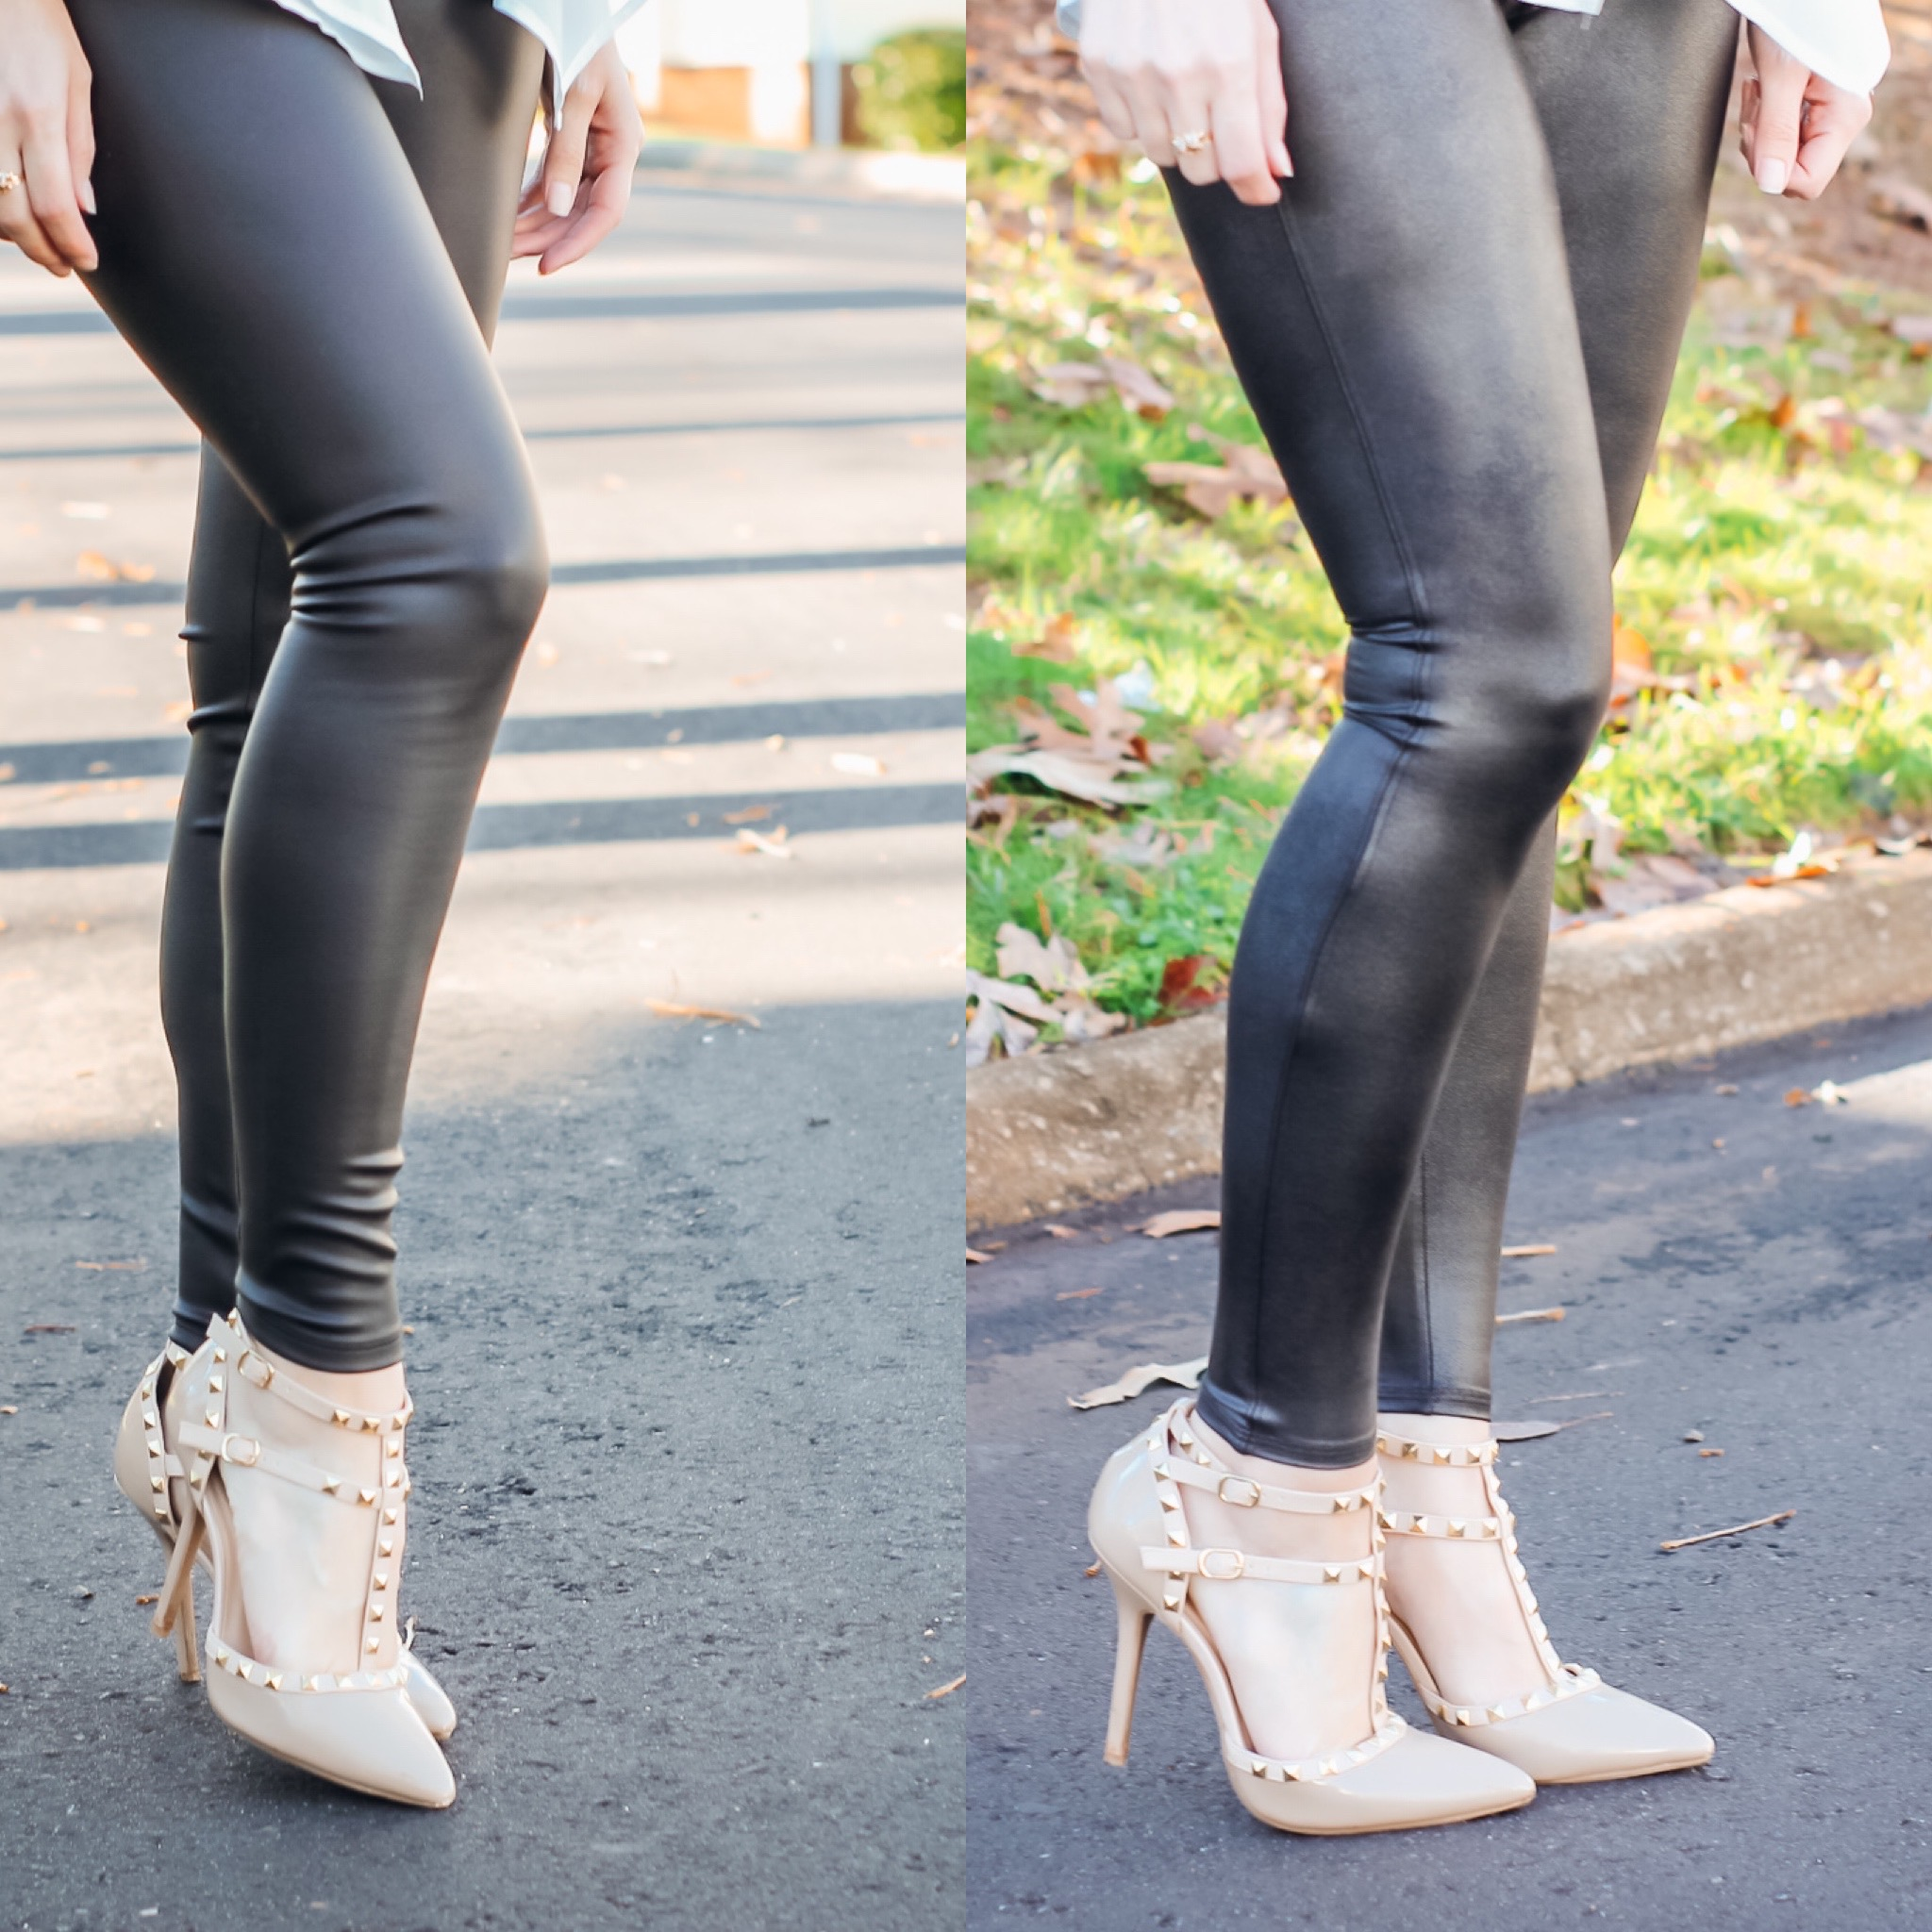 Spanx Faux Leather Leggings vs Express Vegan Leather Leggings Side by Side View